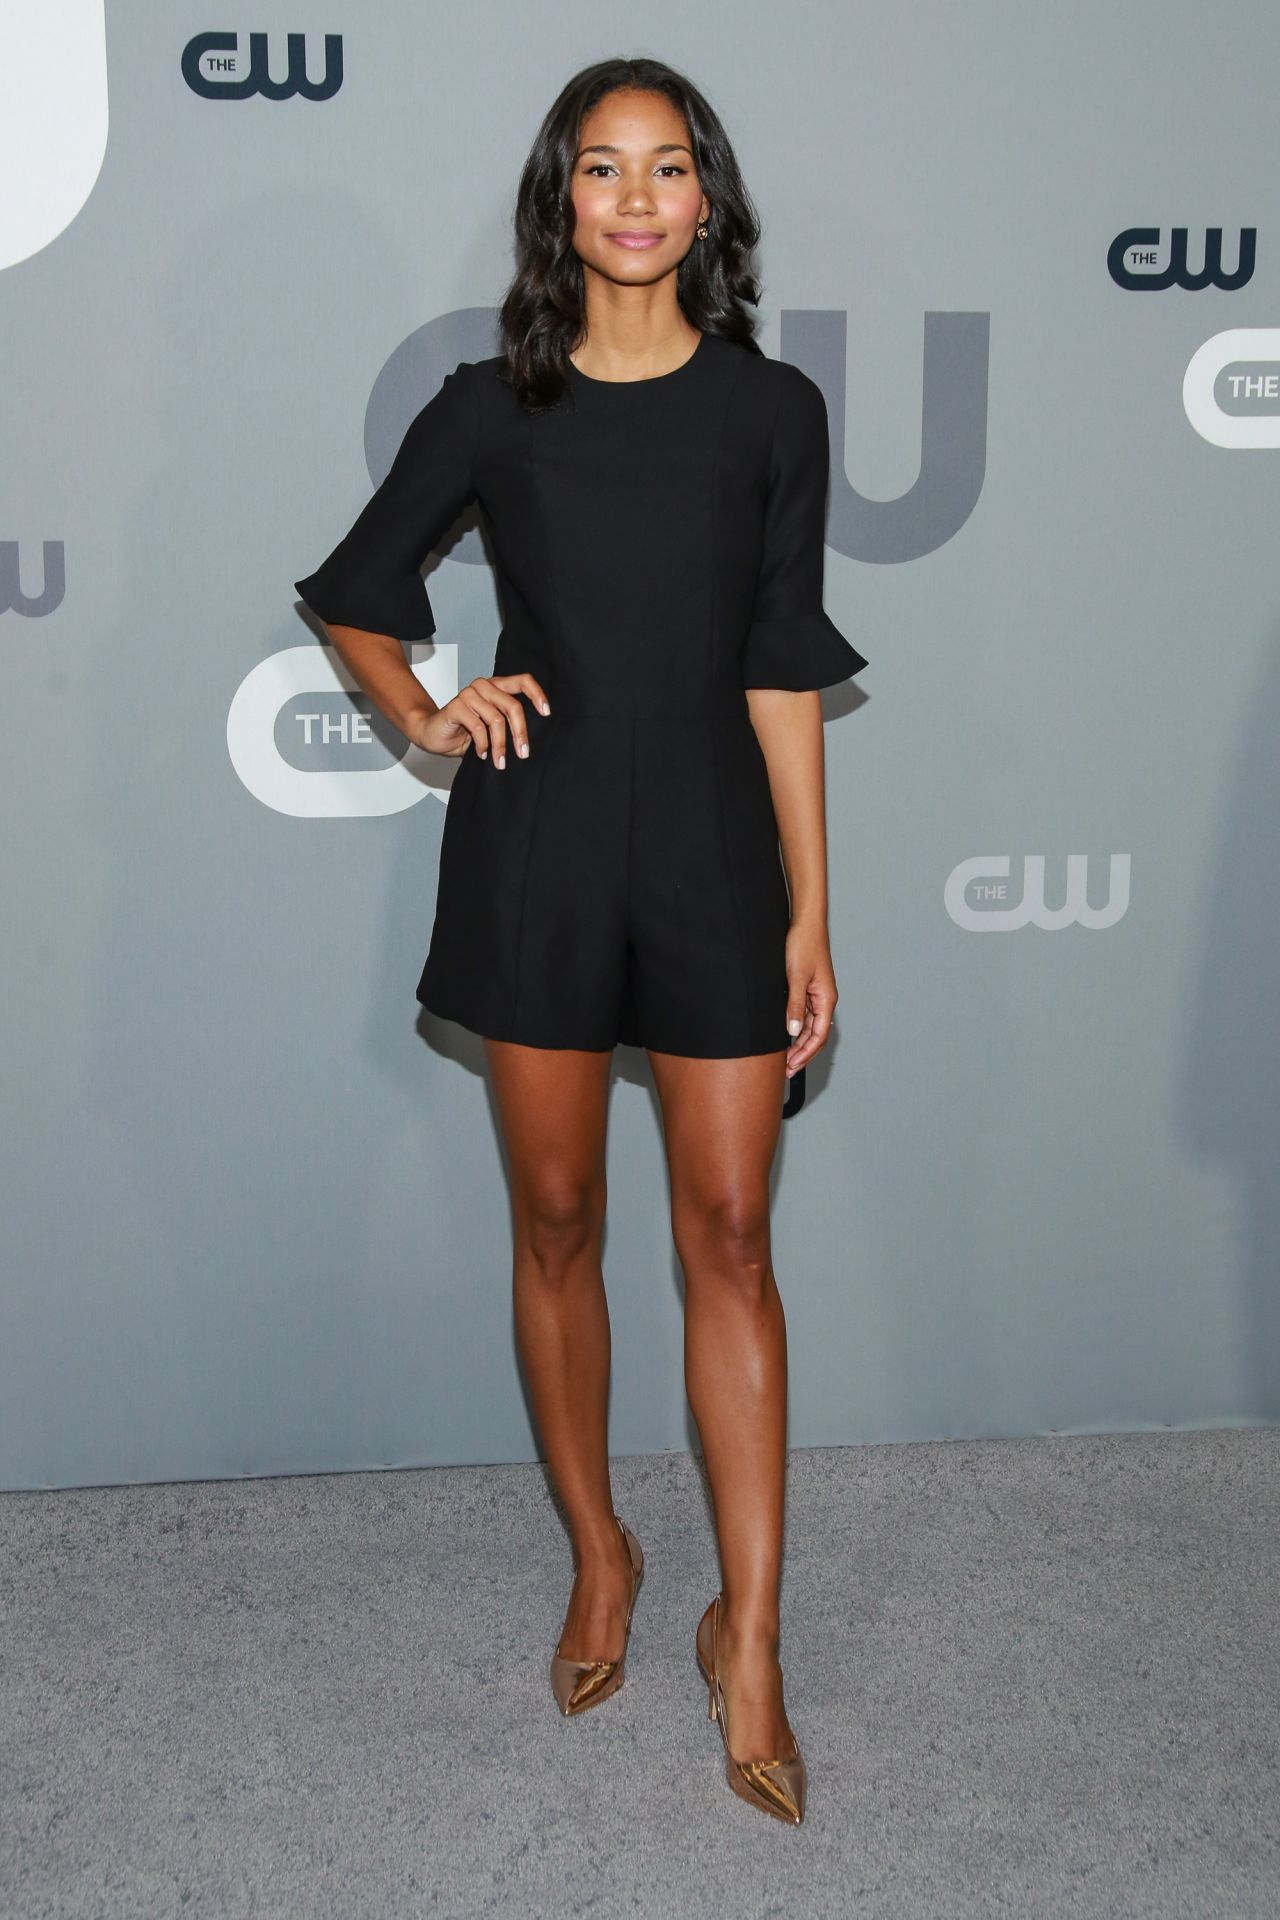 Greta Onieogou Cw Network Upfront Presentation In Nyc 05